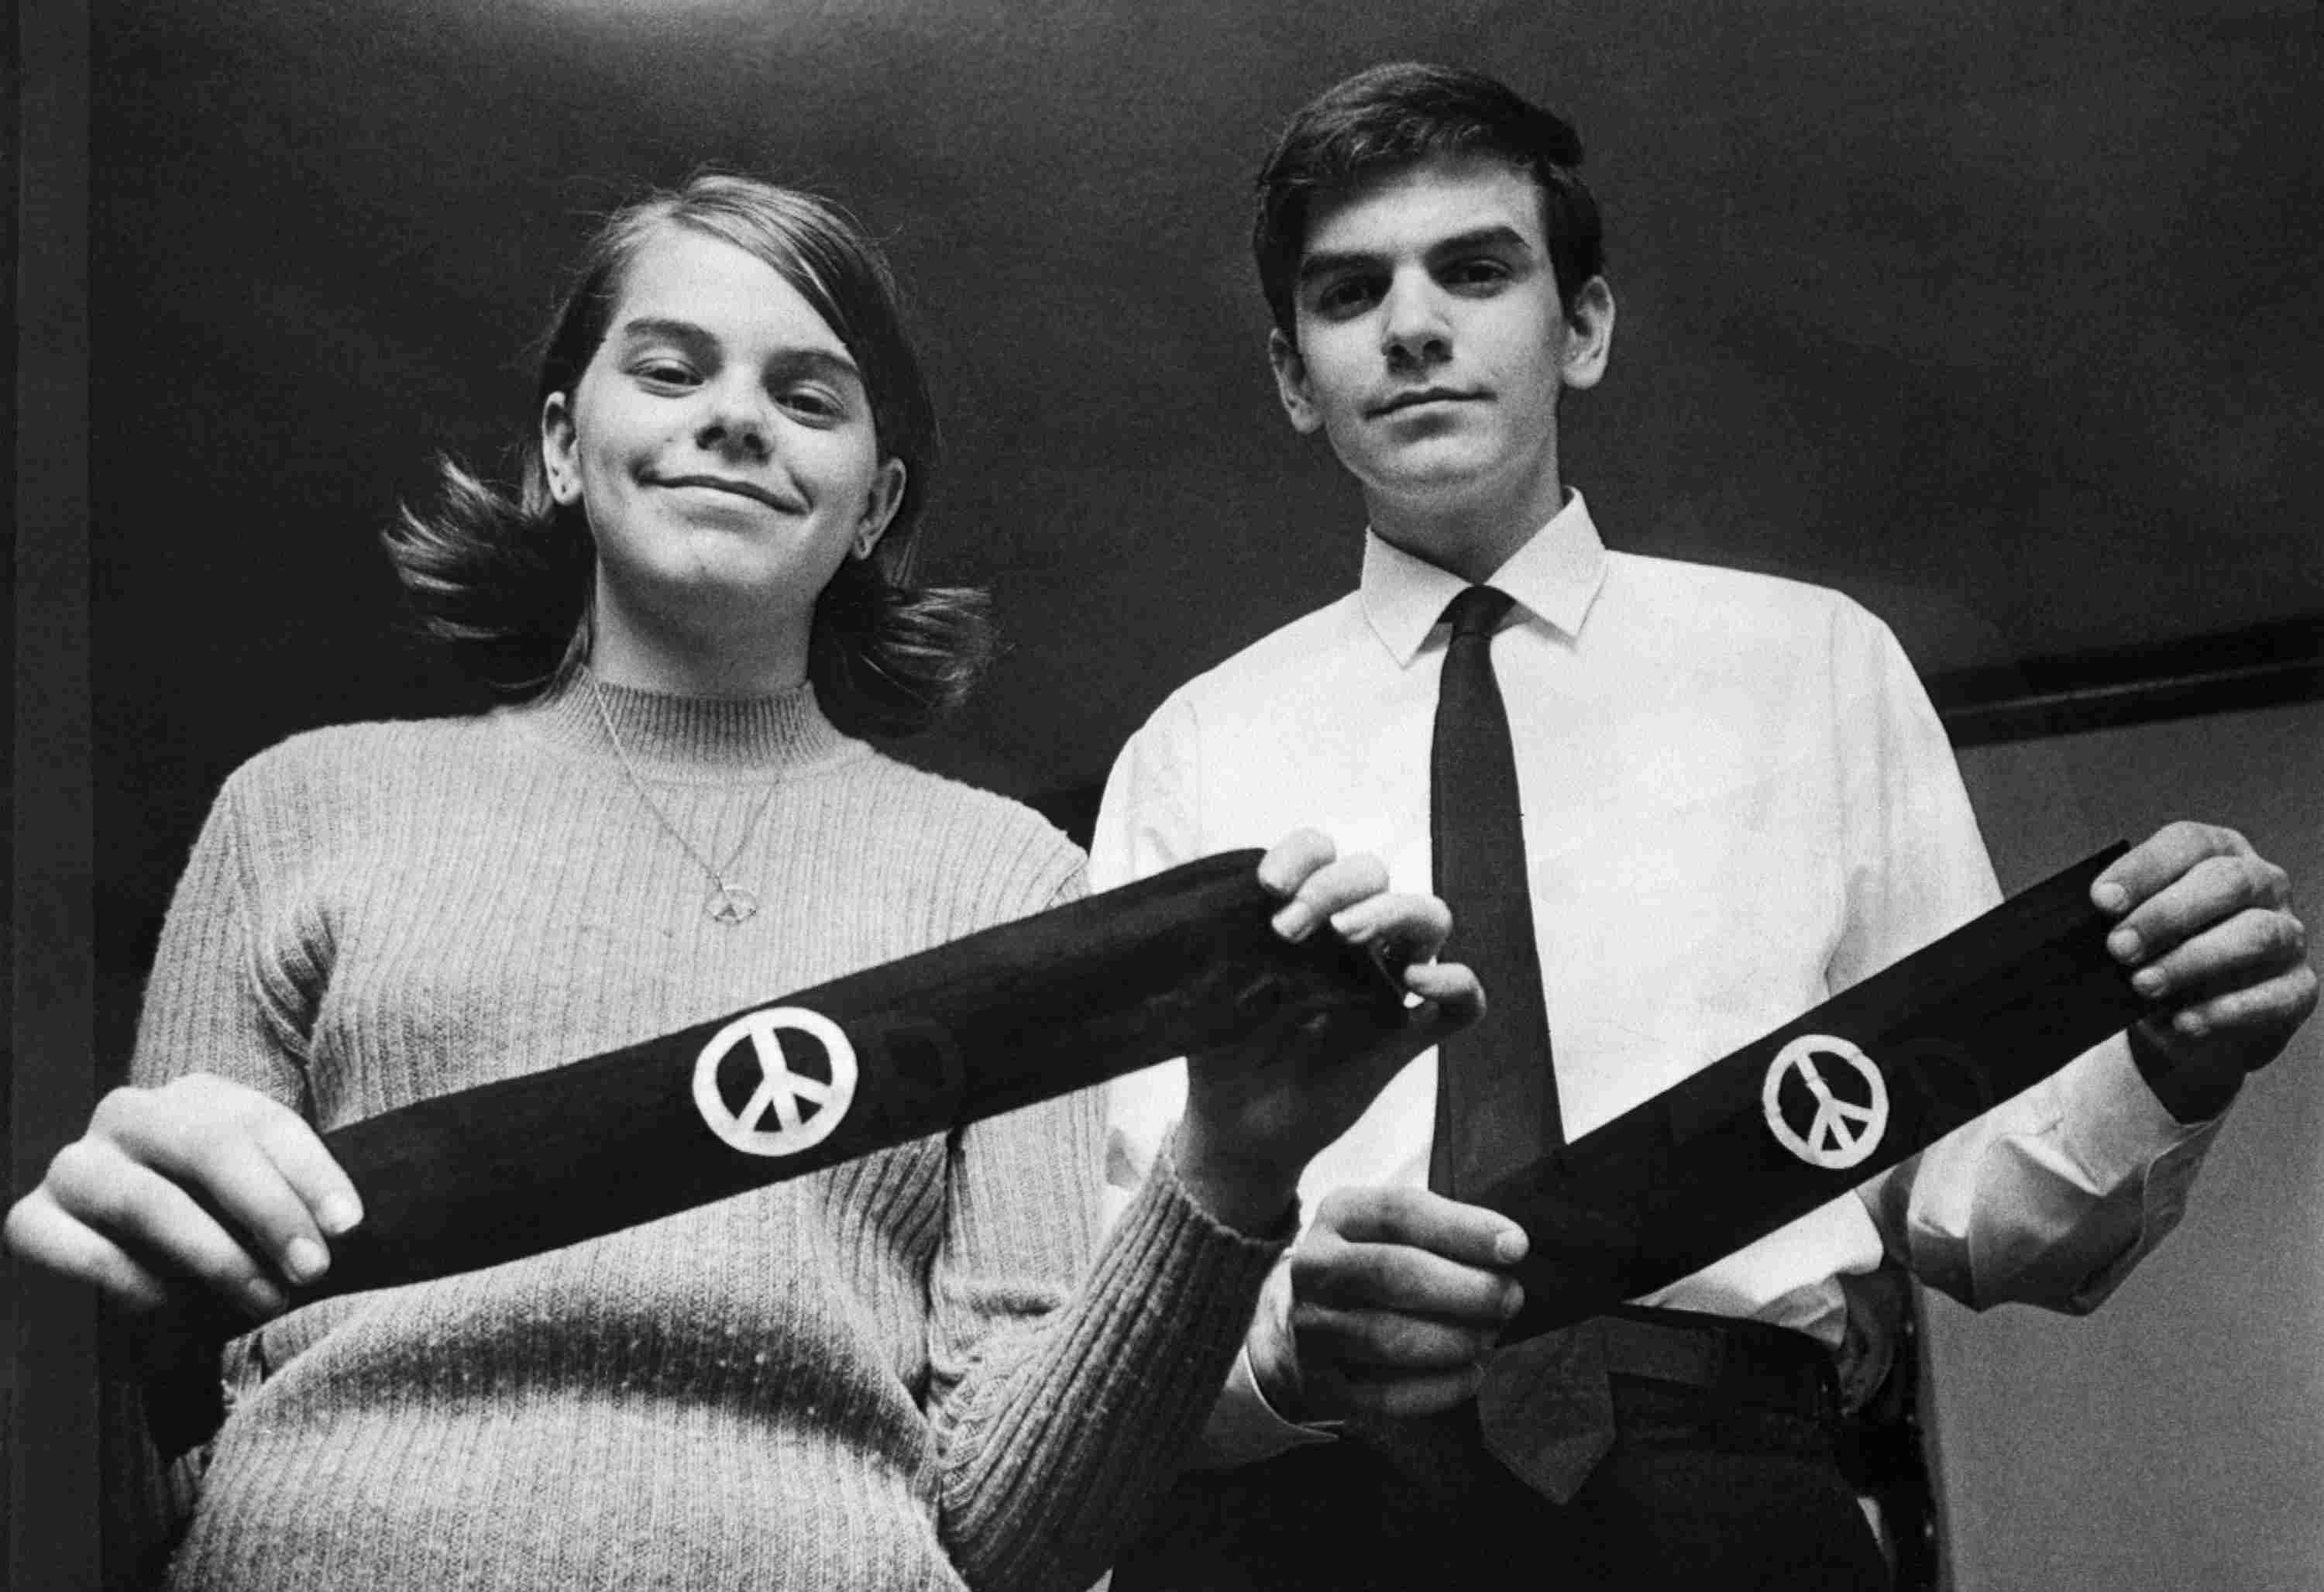 Photograph of protesters with armbands